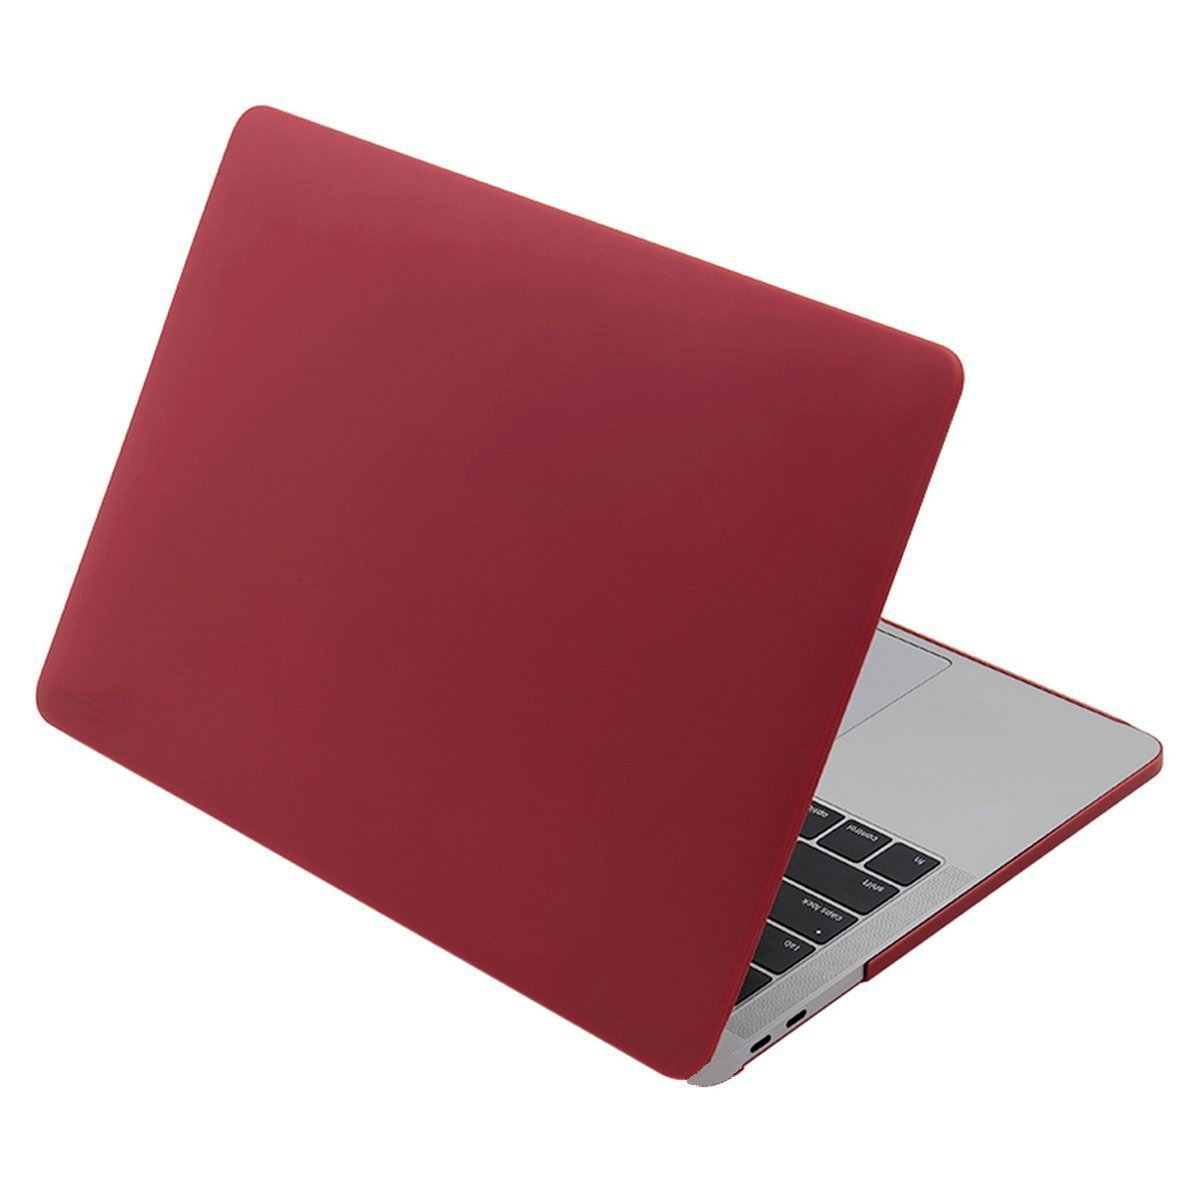 Sherosa Ultra Slim Soft-Touch Plastic Hard Case Cover for Newest Macbook Pro 13 Inch with Retina Display No CD-ROM (A1706/A1708, Oct 2016 Release) - Wine Red